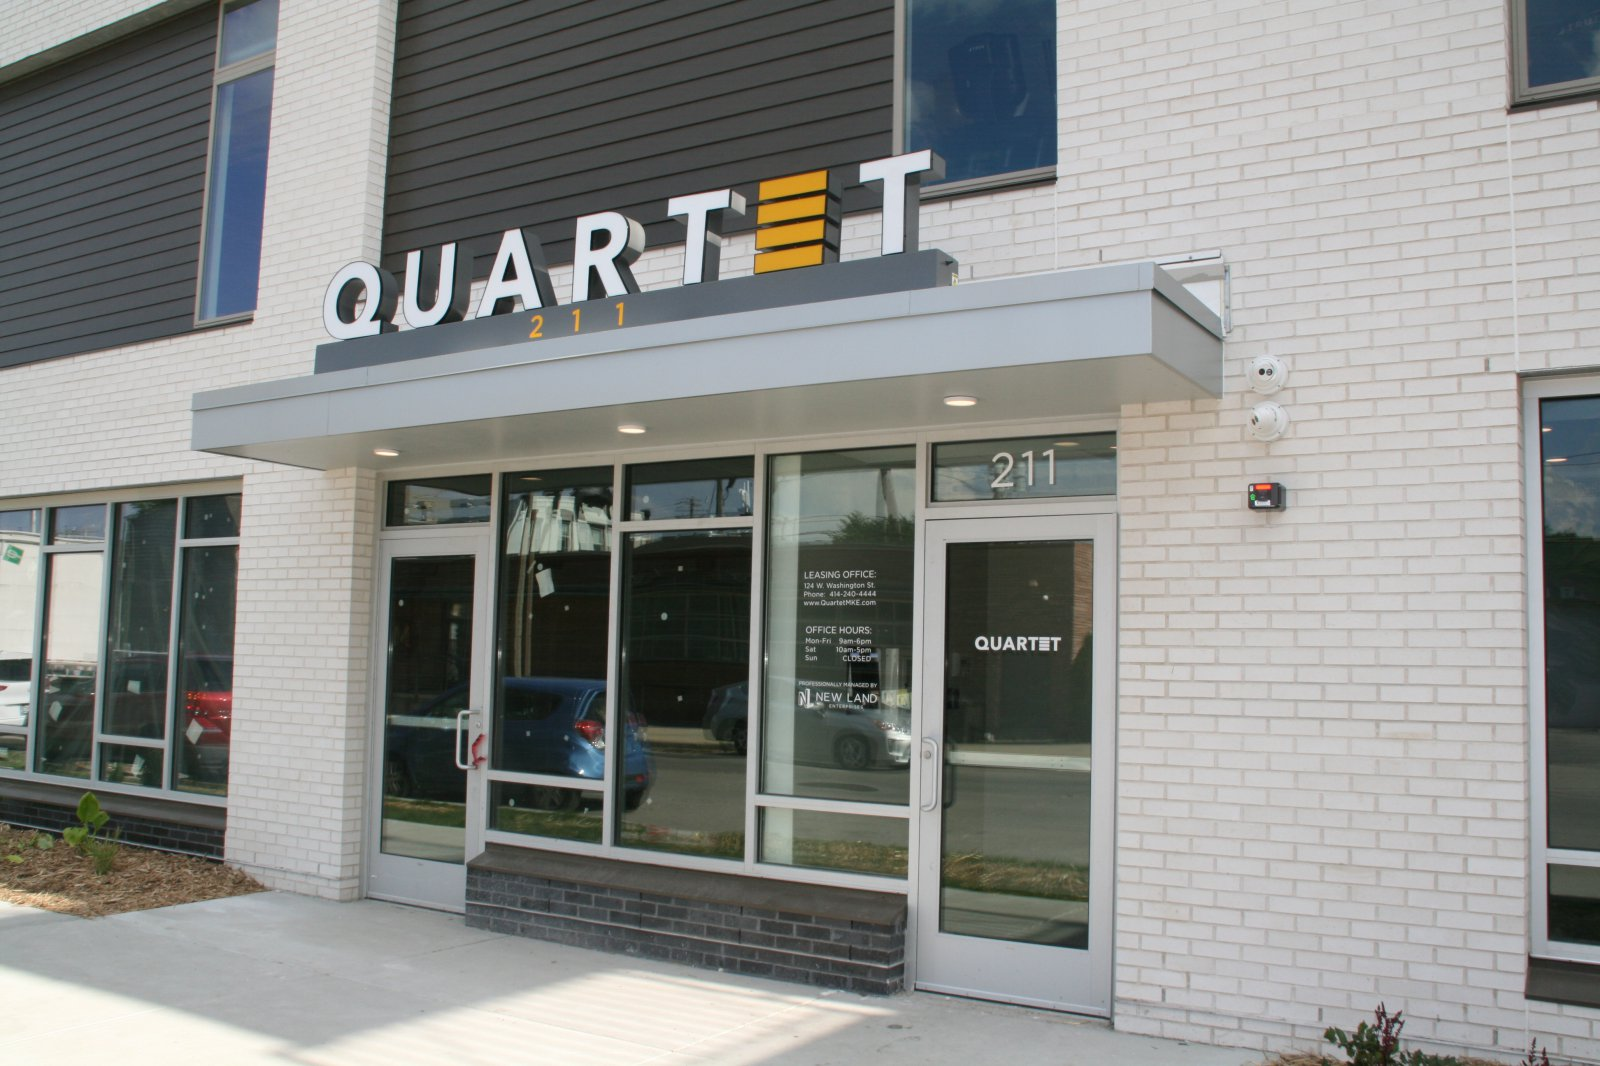 Quartet Apartments